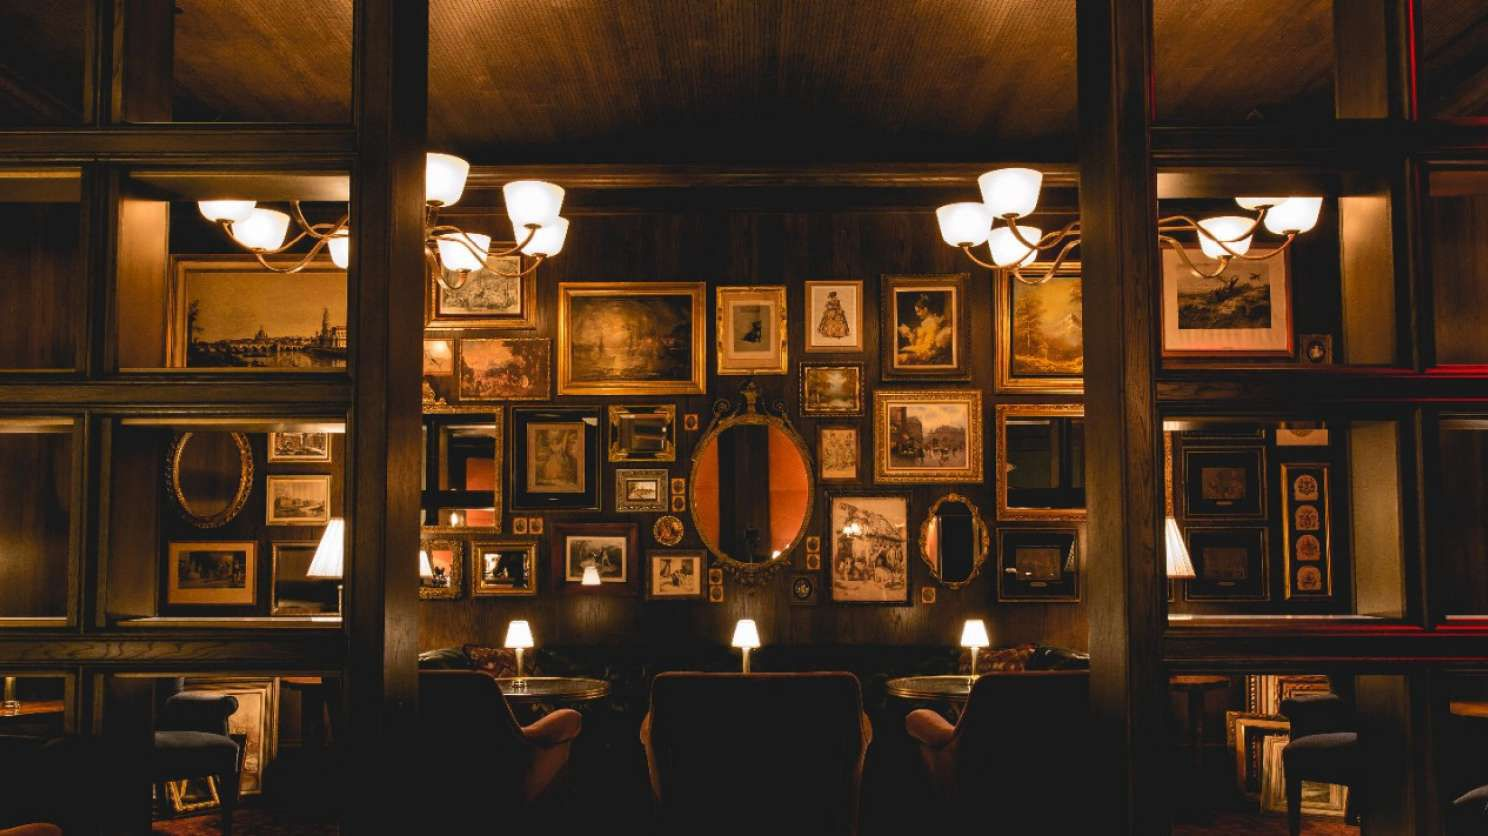 dimly lit restaurant with vintage framed pictures on a wall